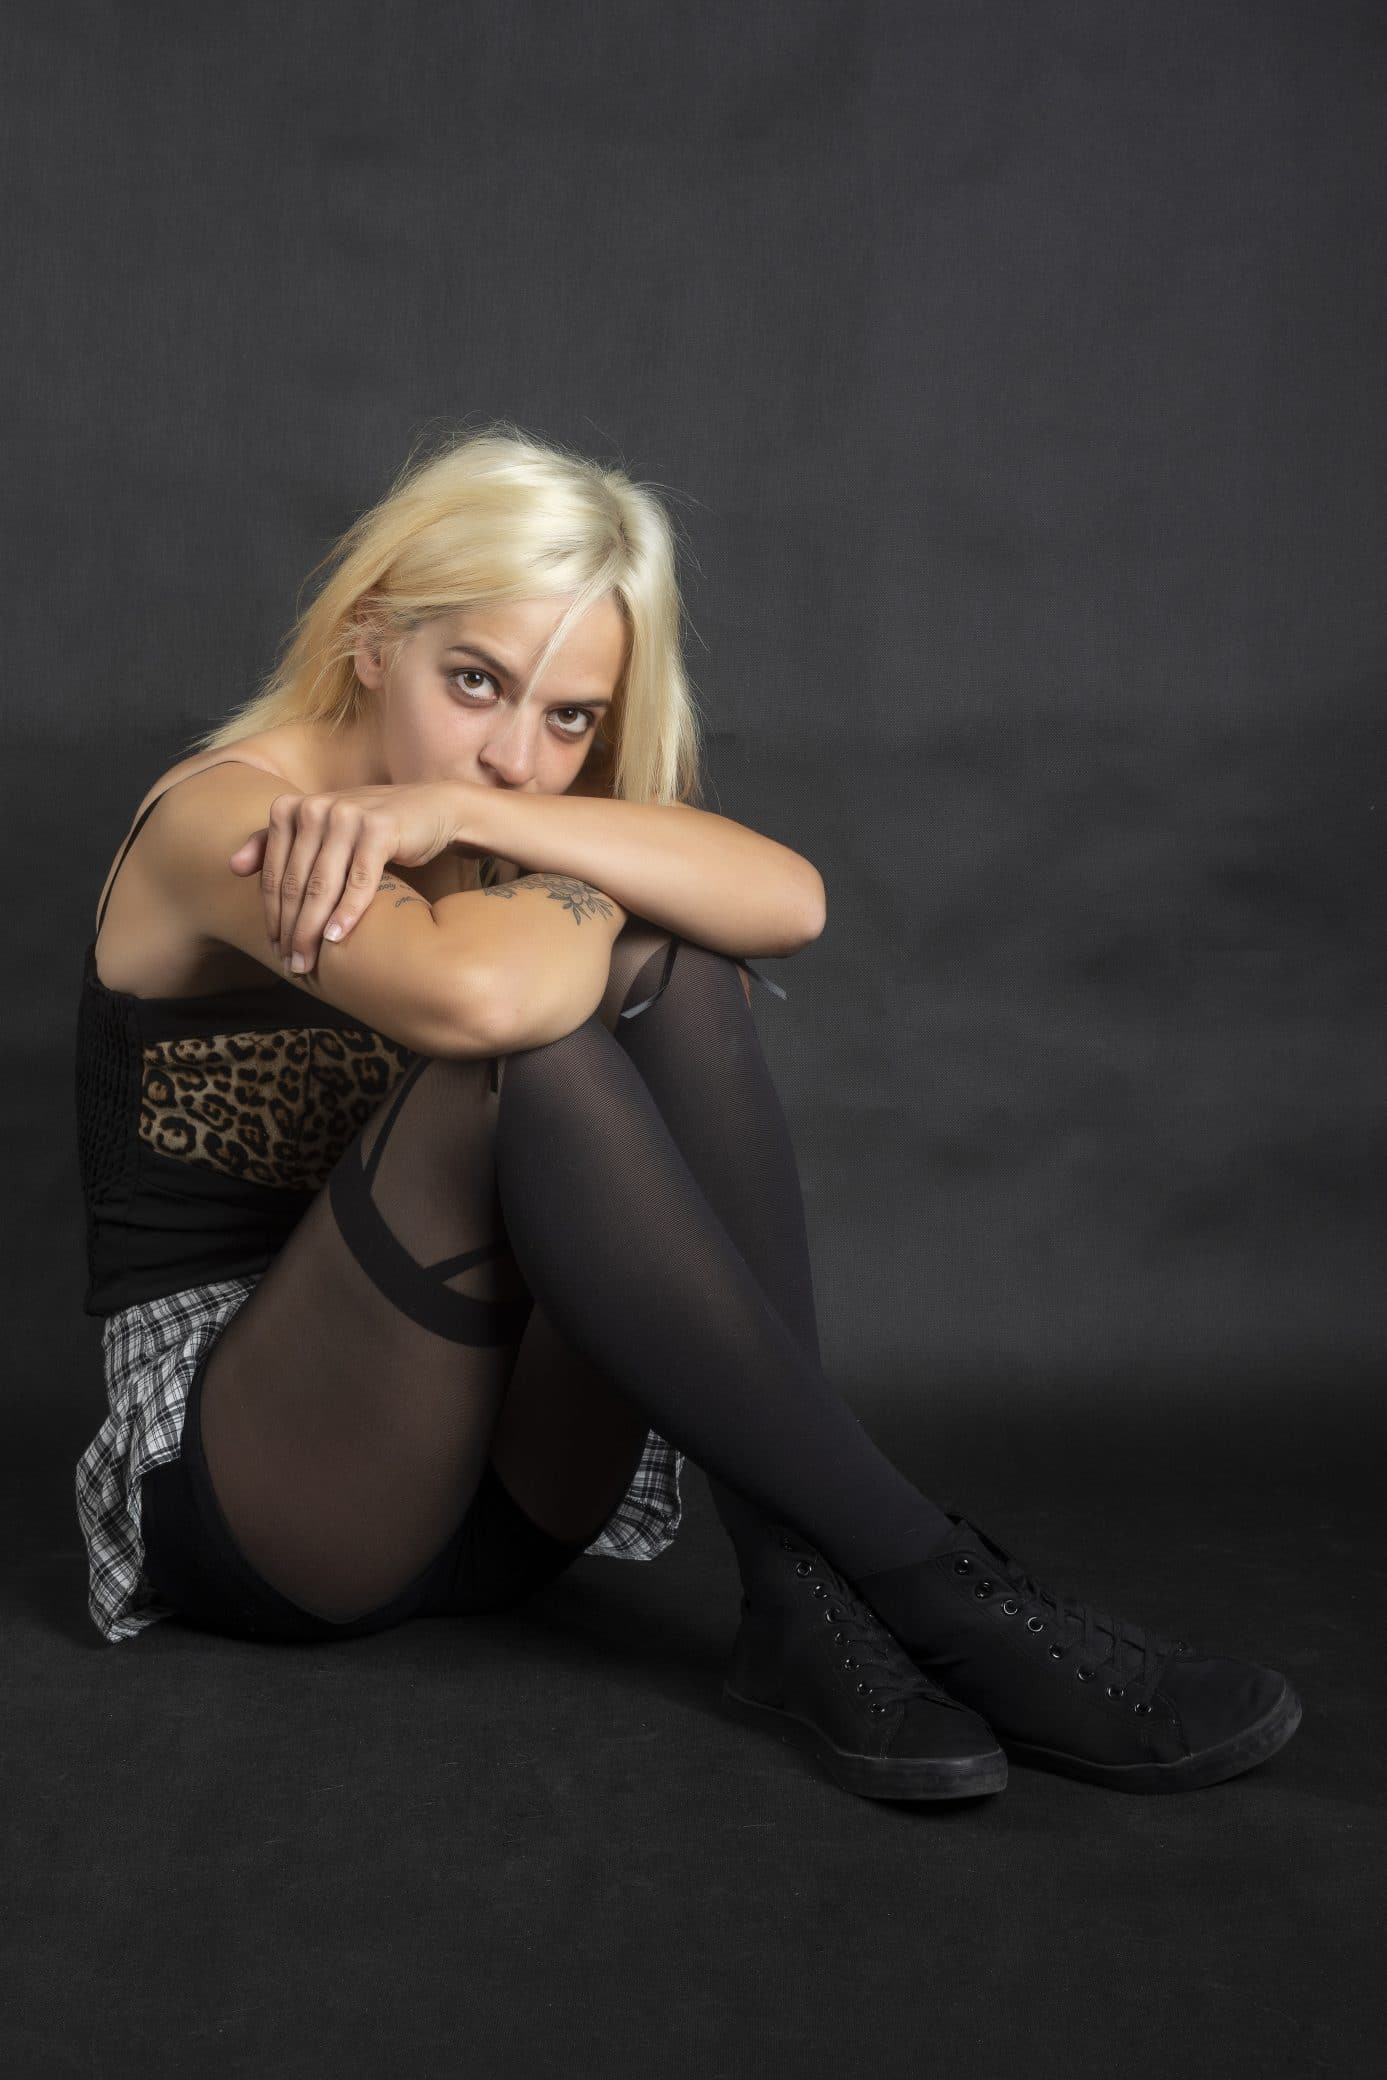 Beautiful blonde woman sitting on the floor resting her